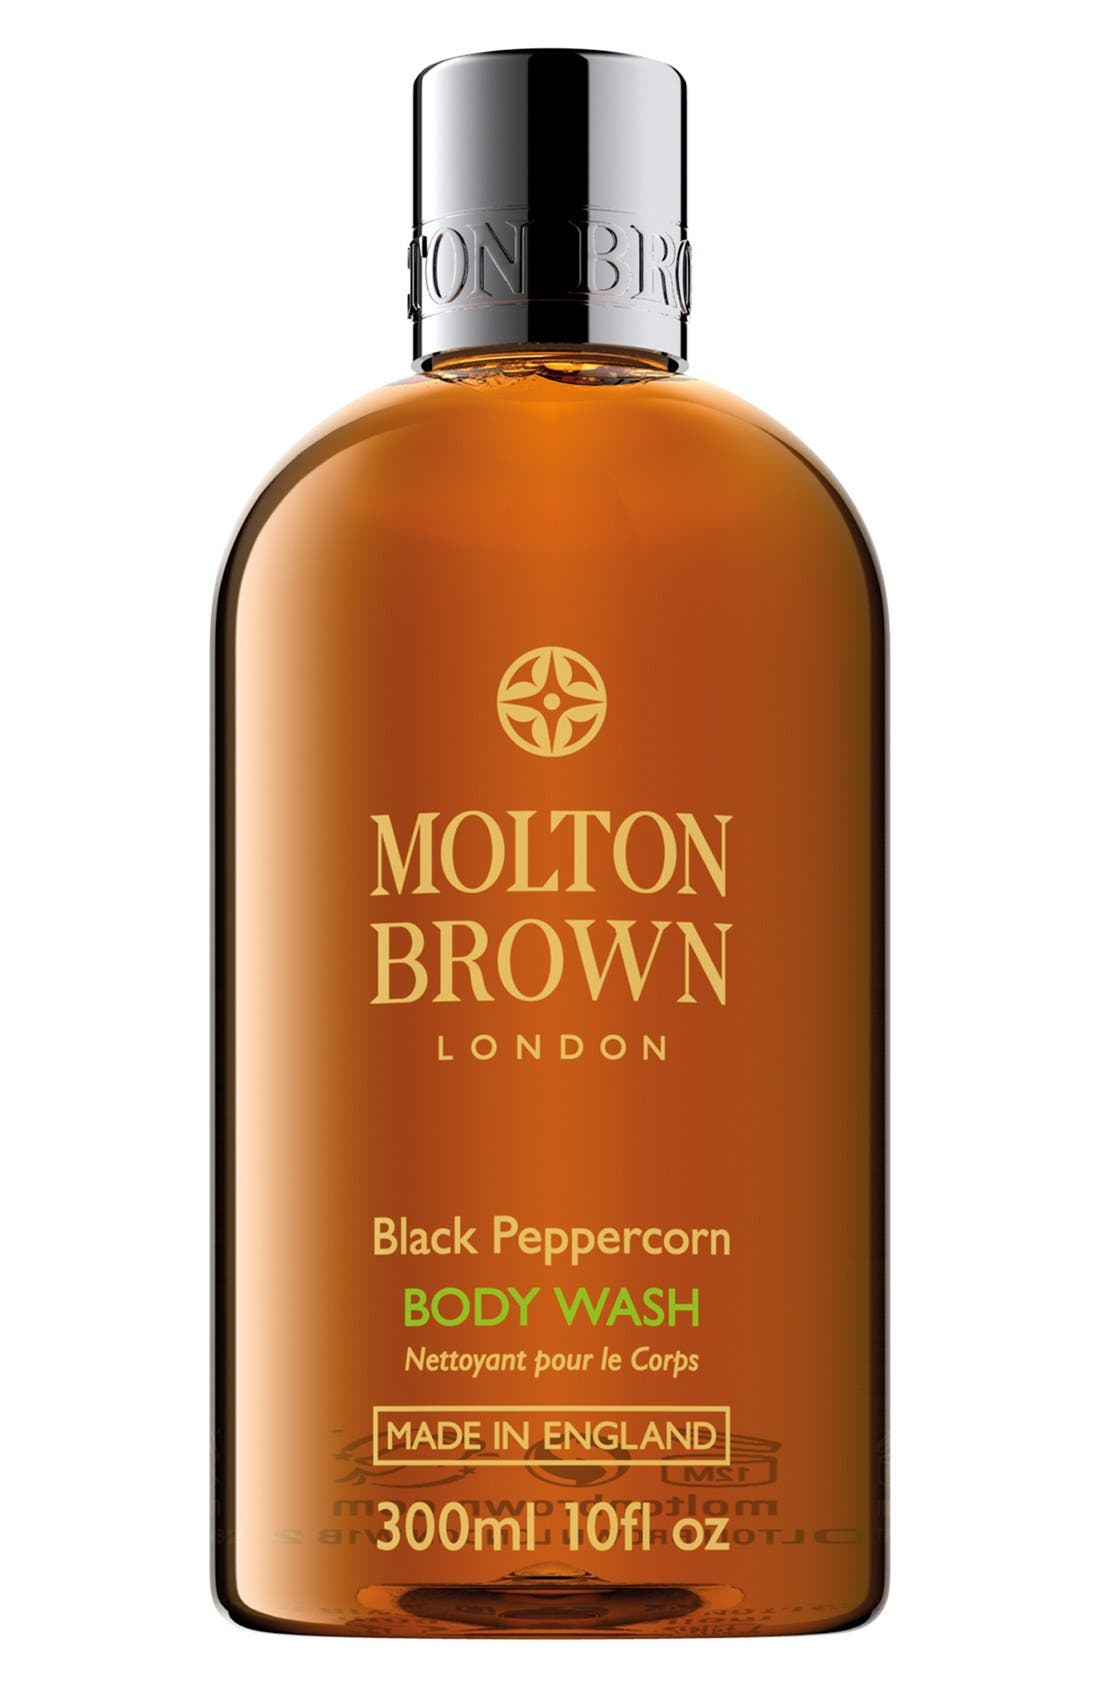 MOLTON BROWN London Body Wash